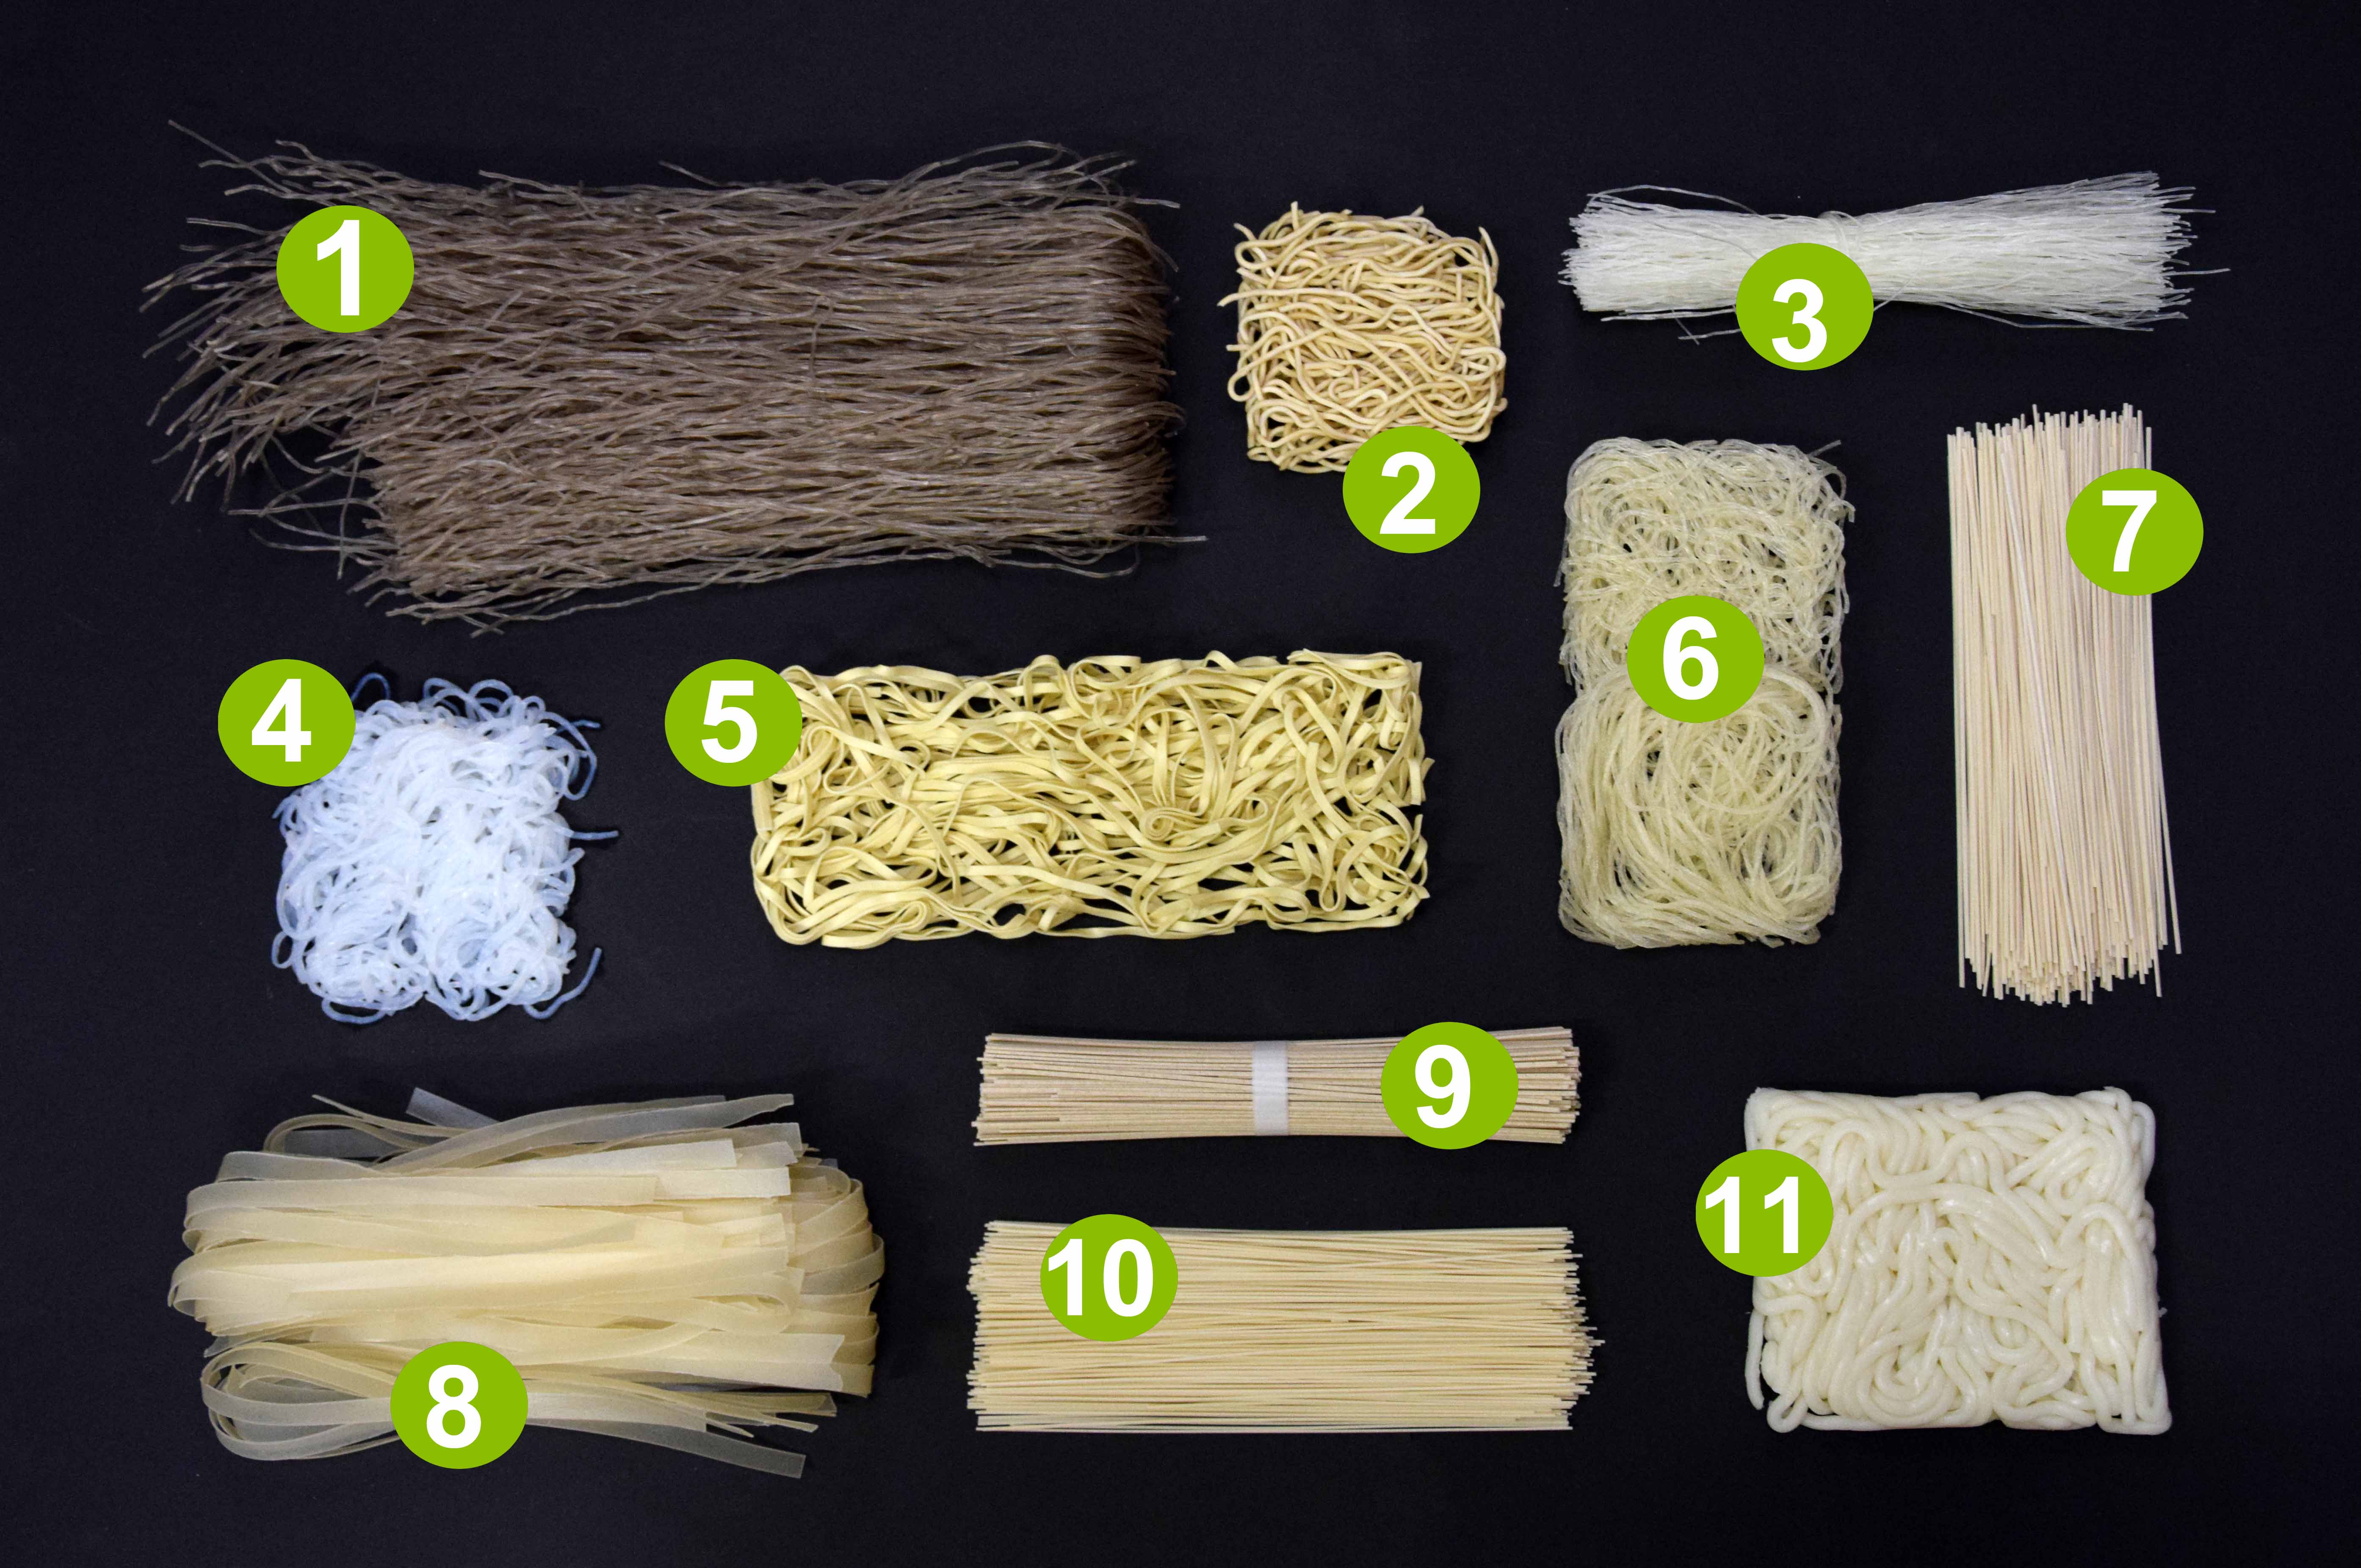 Image of 11 different types of noodles